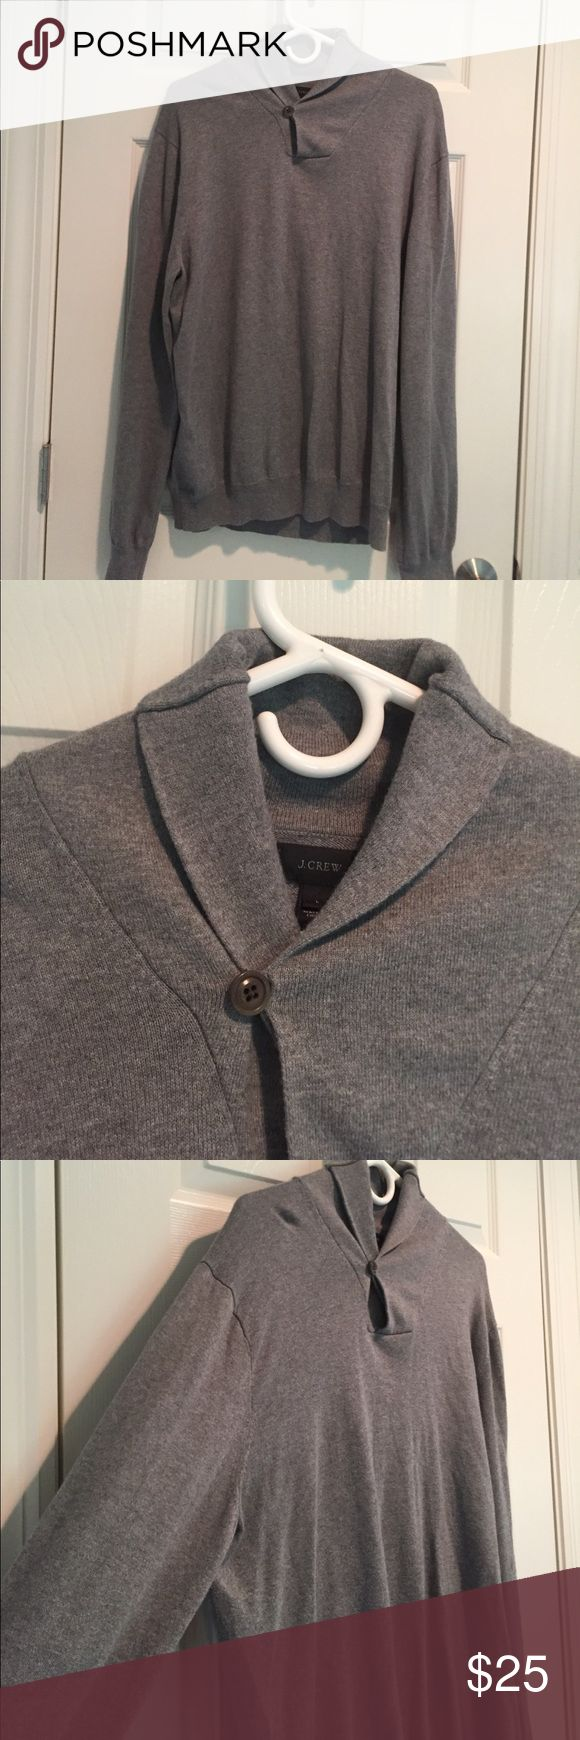 J.Crew Men's Shawl Collar Sweater J.Crew Men's Shawl Collar Sweater - light heather grey with grey button. Pre-loved. Looks amazing over shirt and tie or over a tee. J. Crew Sweaters